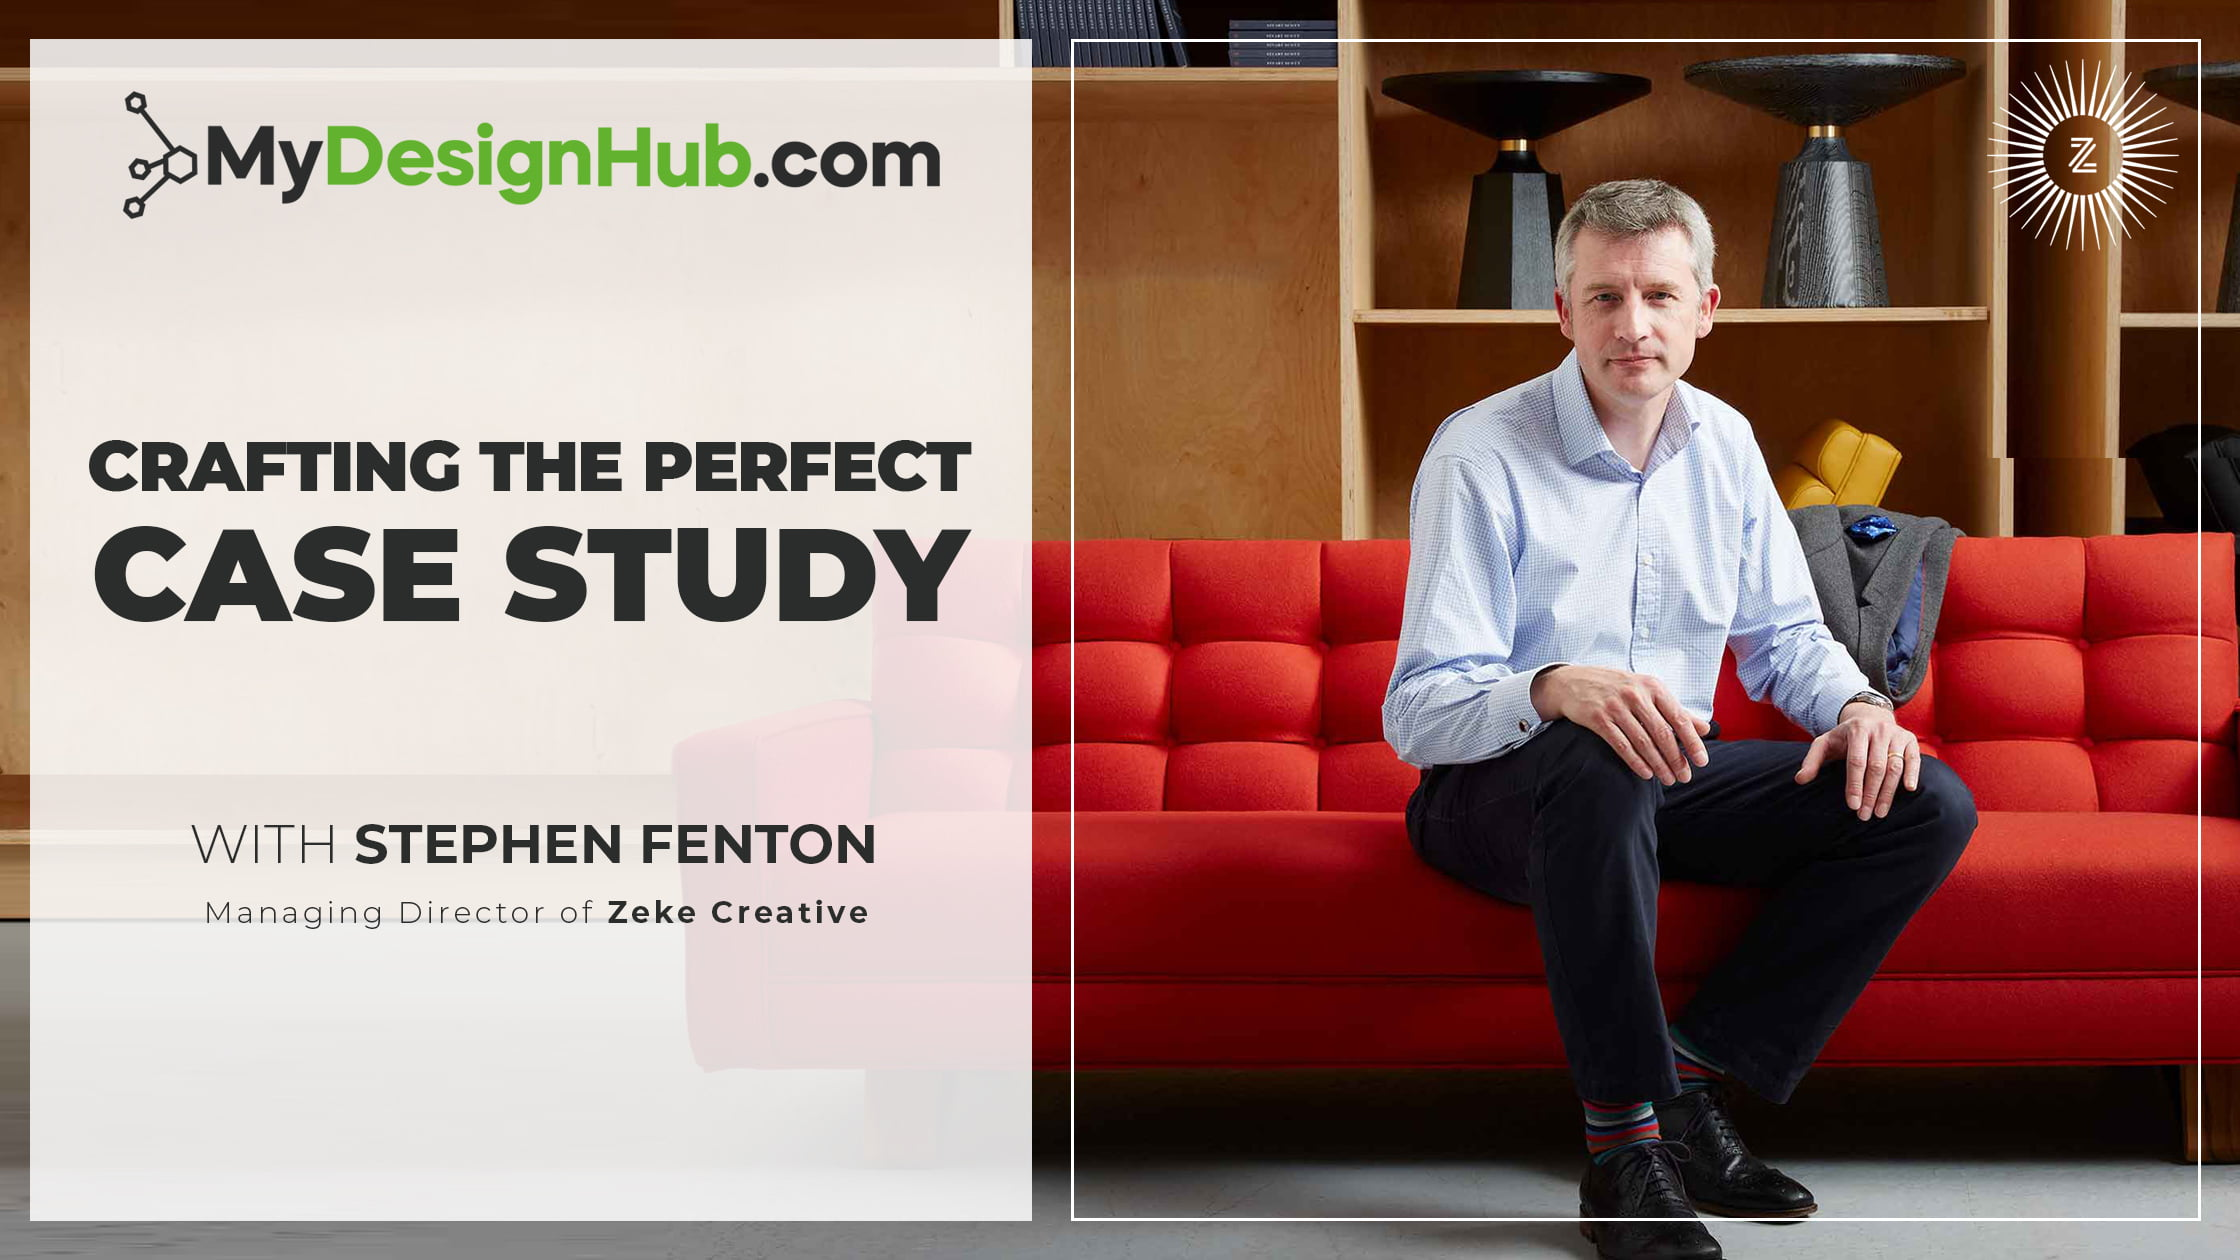 Crafting the perfect case study with Stephen Fenton